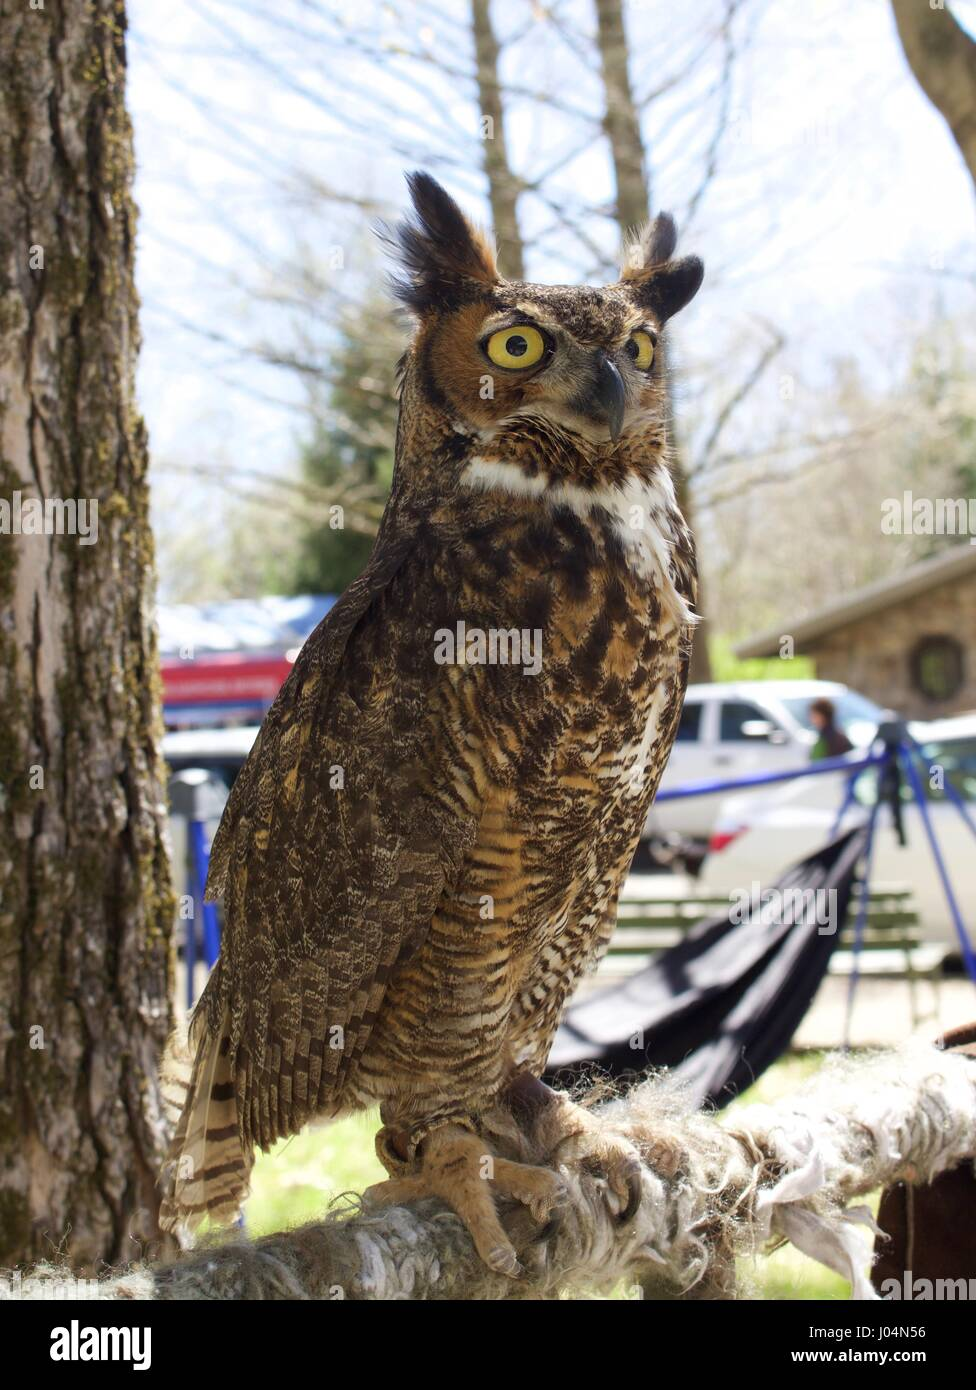 Great Horned Owl Face - Stock Image